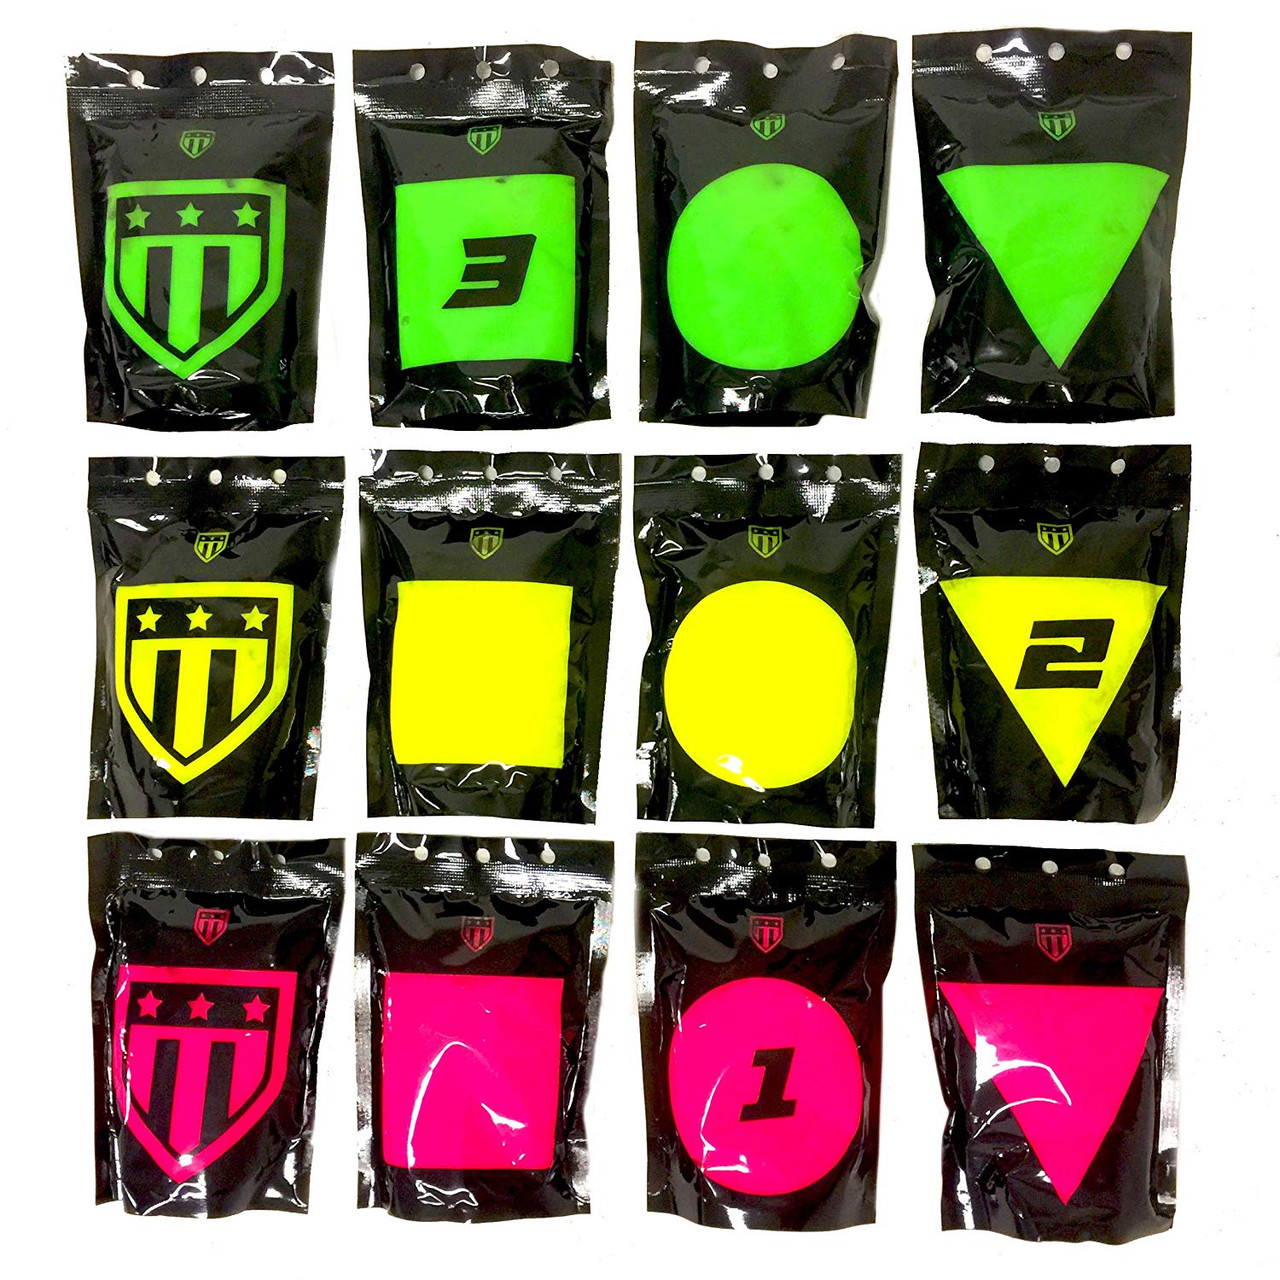 Triumph Systems Pop Packs (12 Pack)